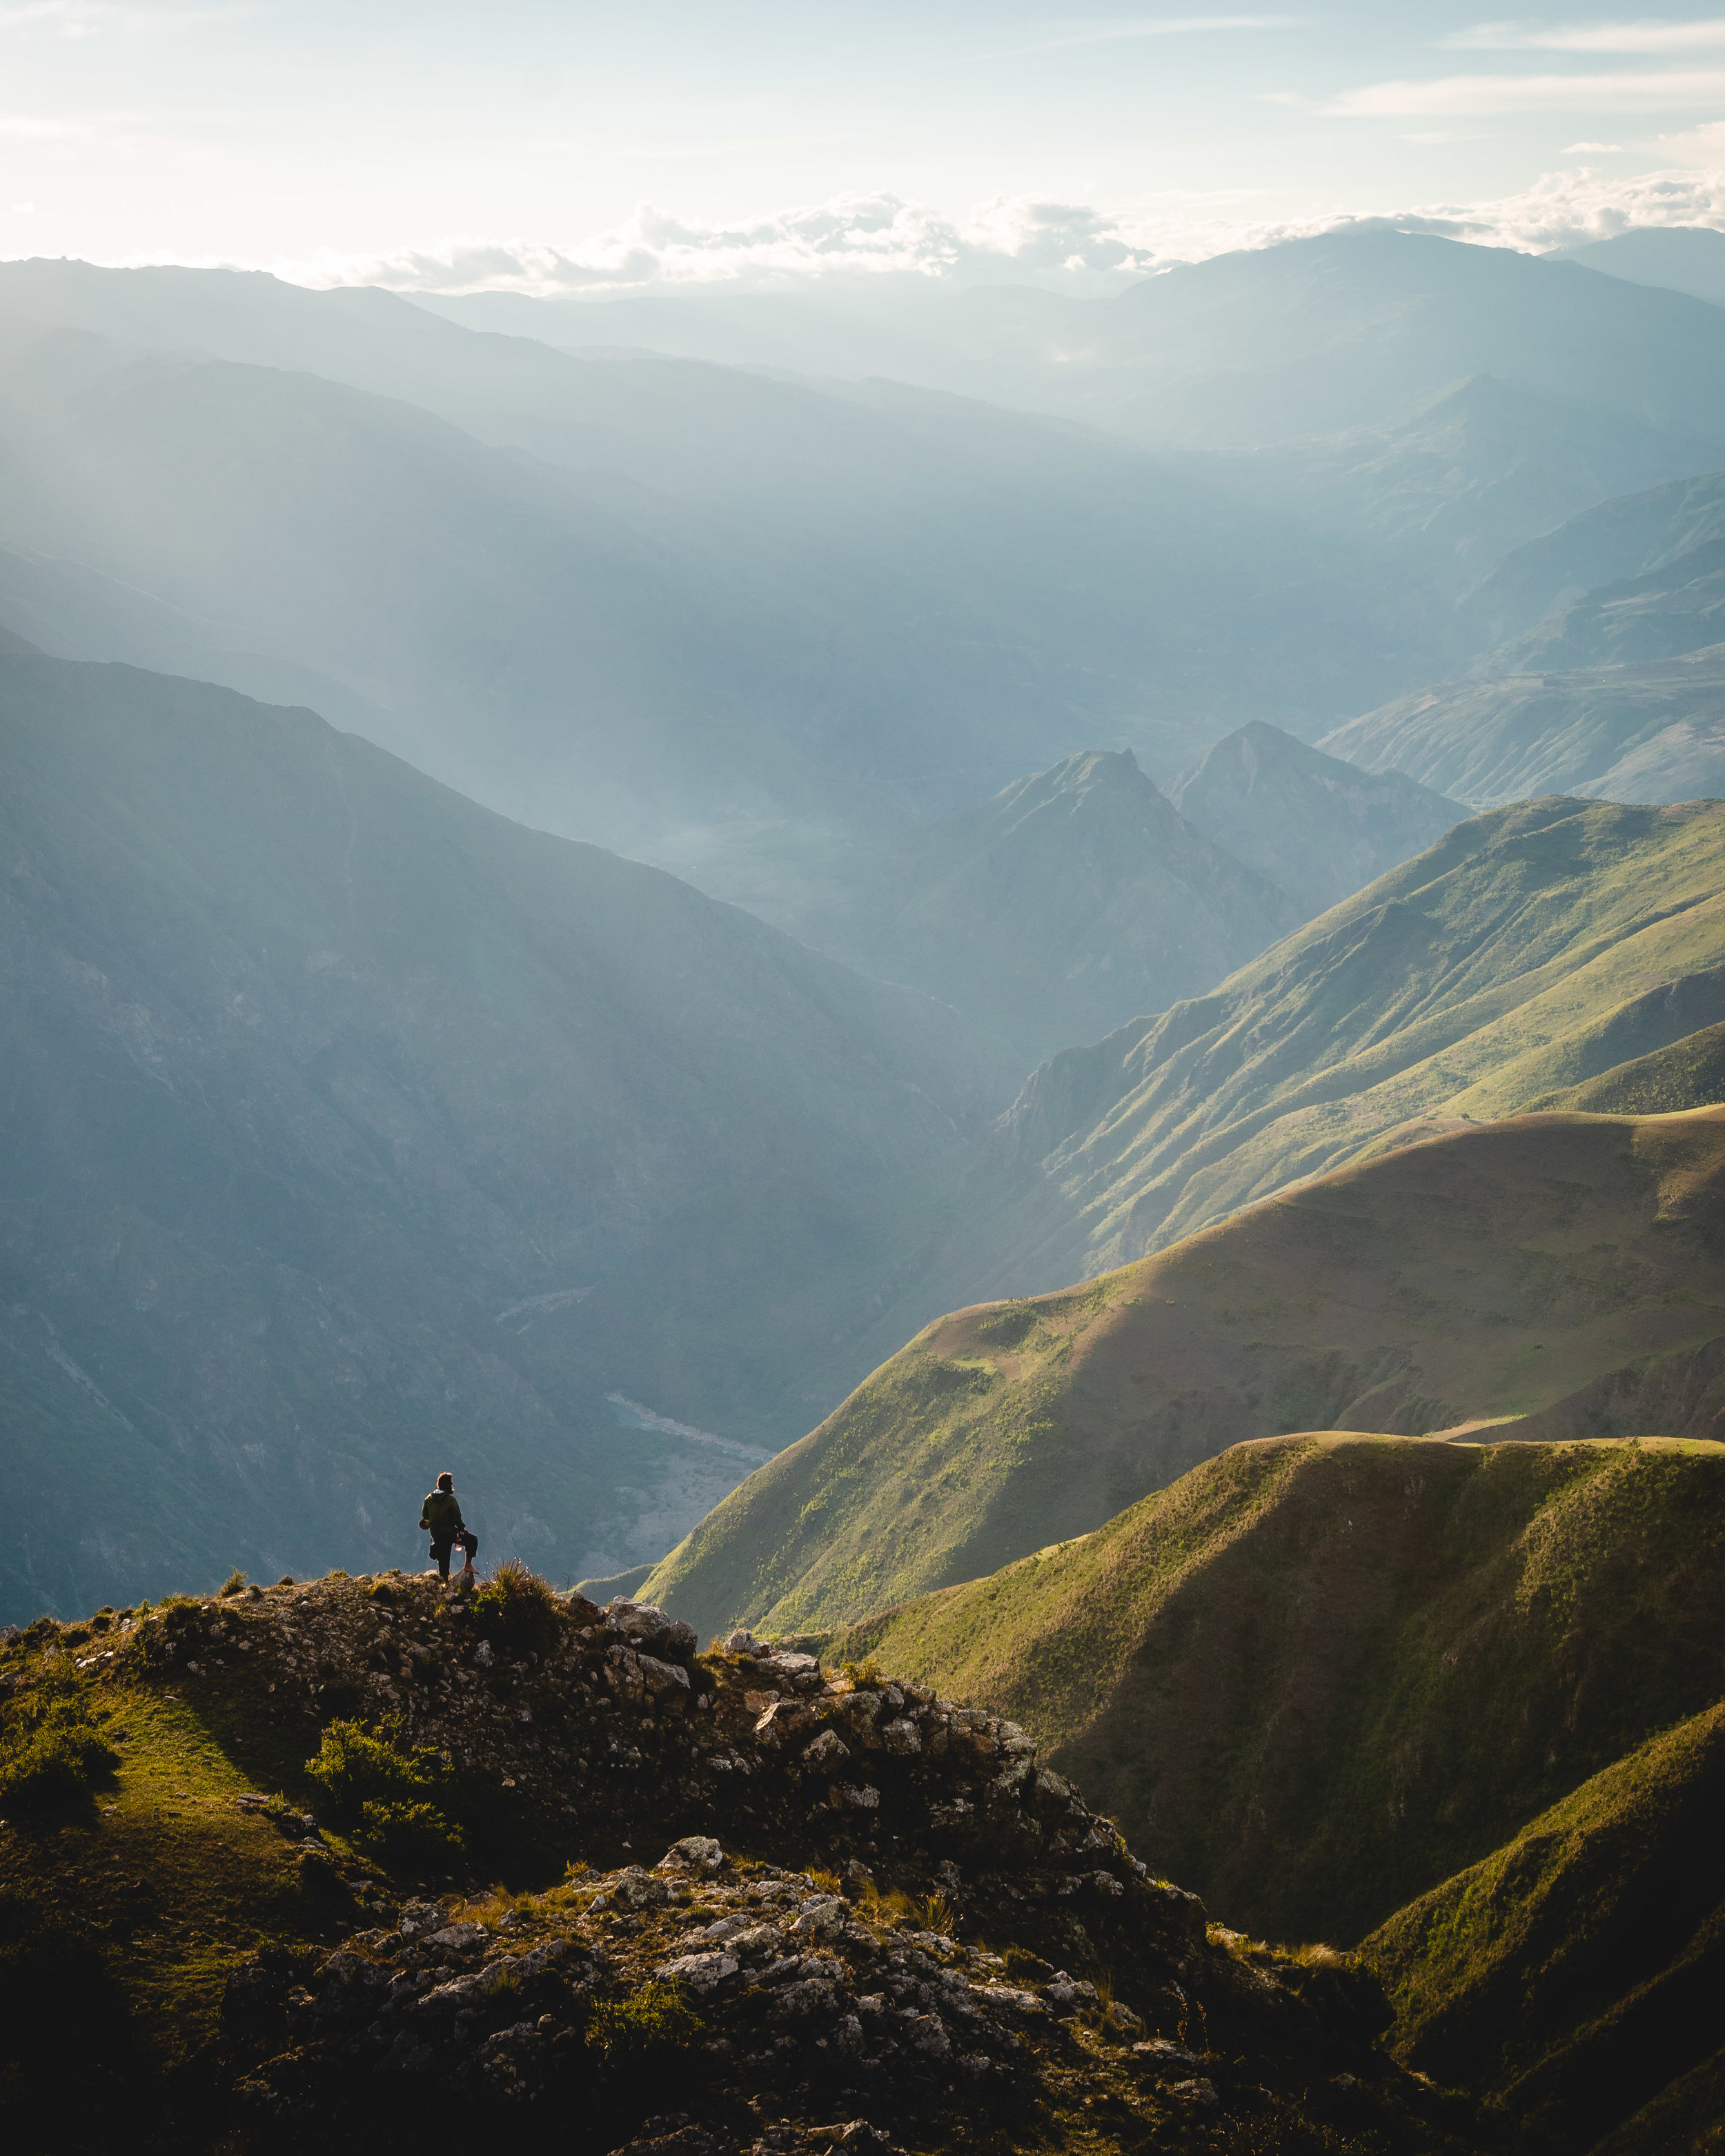 The awesome landscapes of the Apurimac valley.